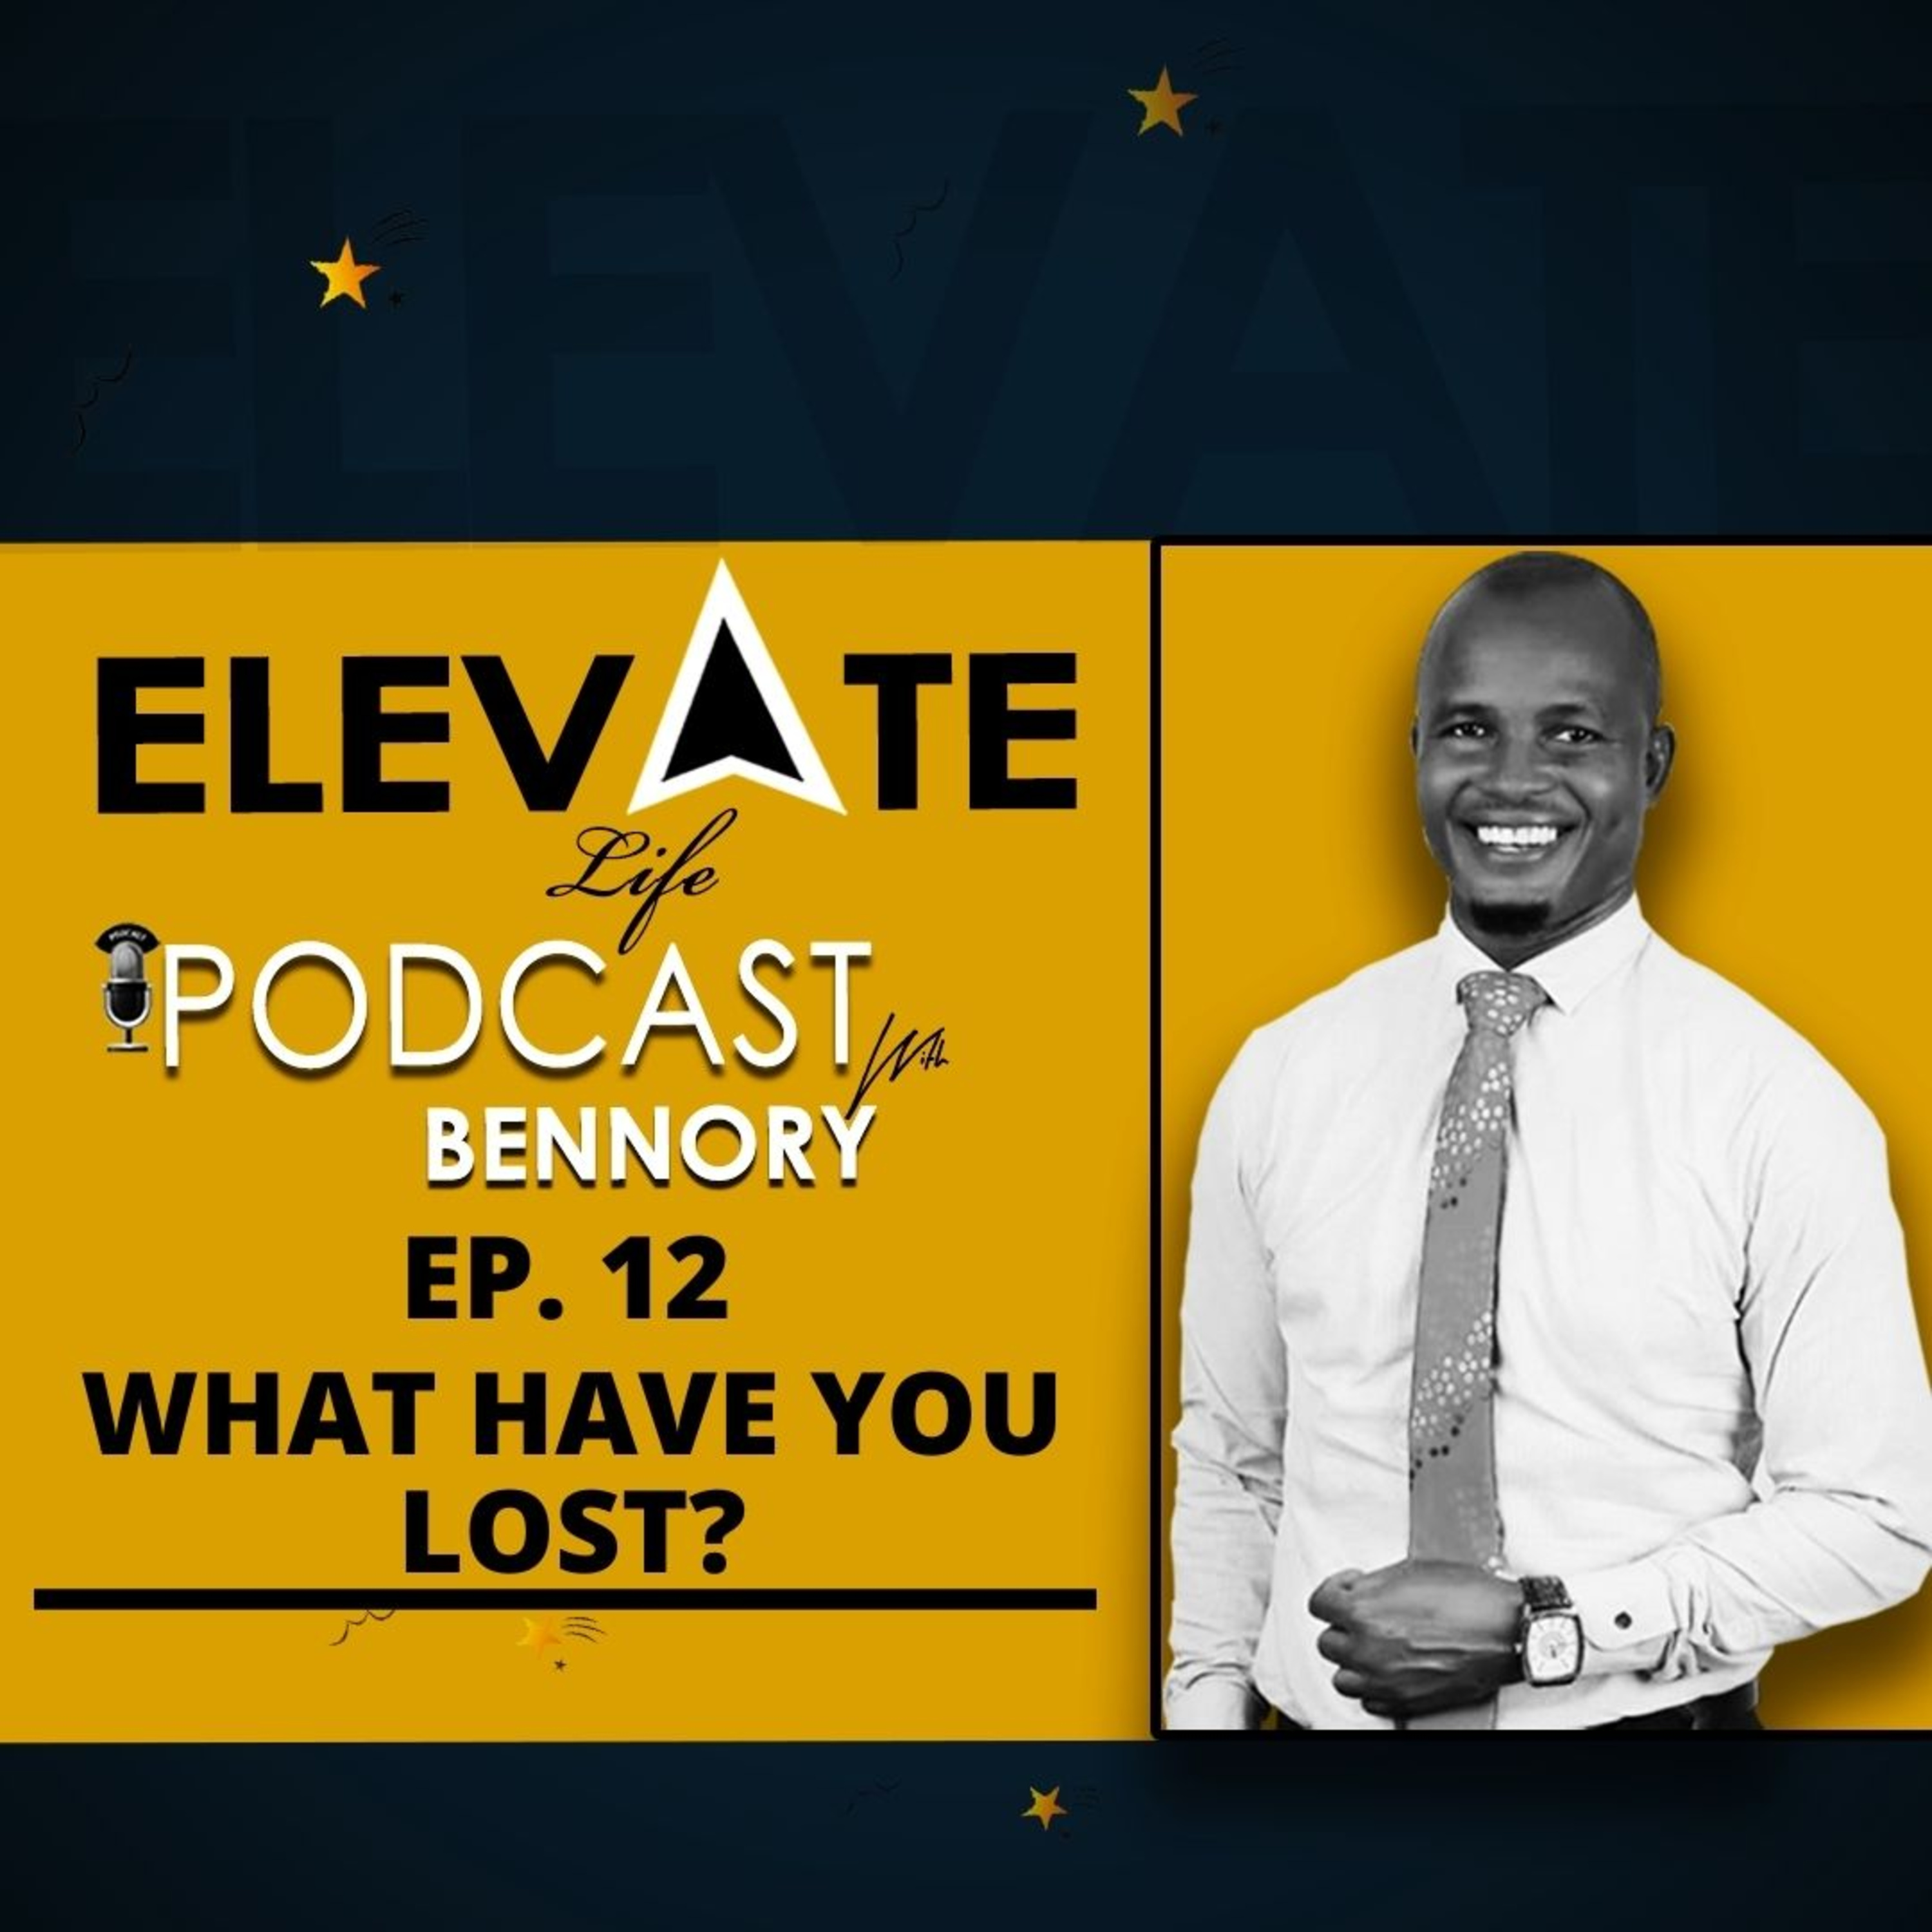 Elevate - LIFE, Podcast with benNORY on Jamit